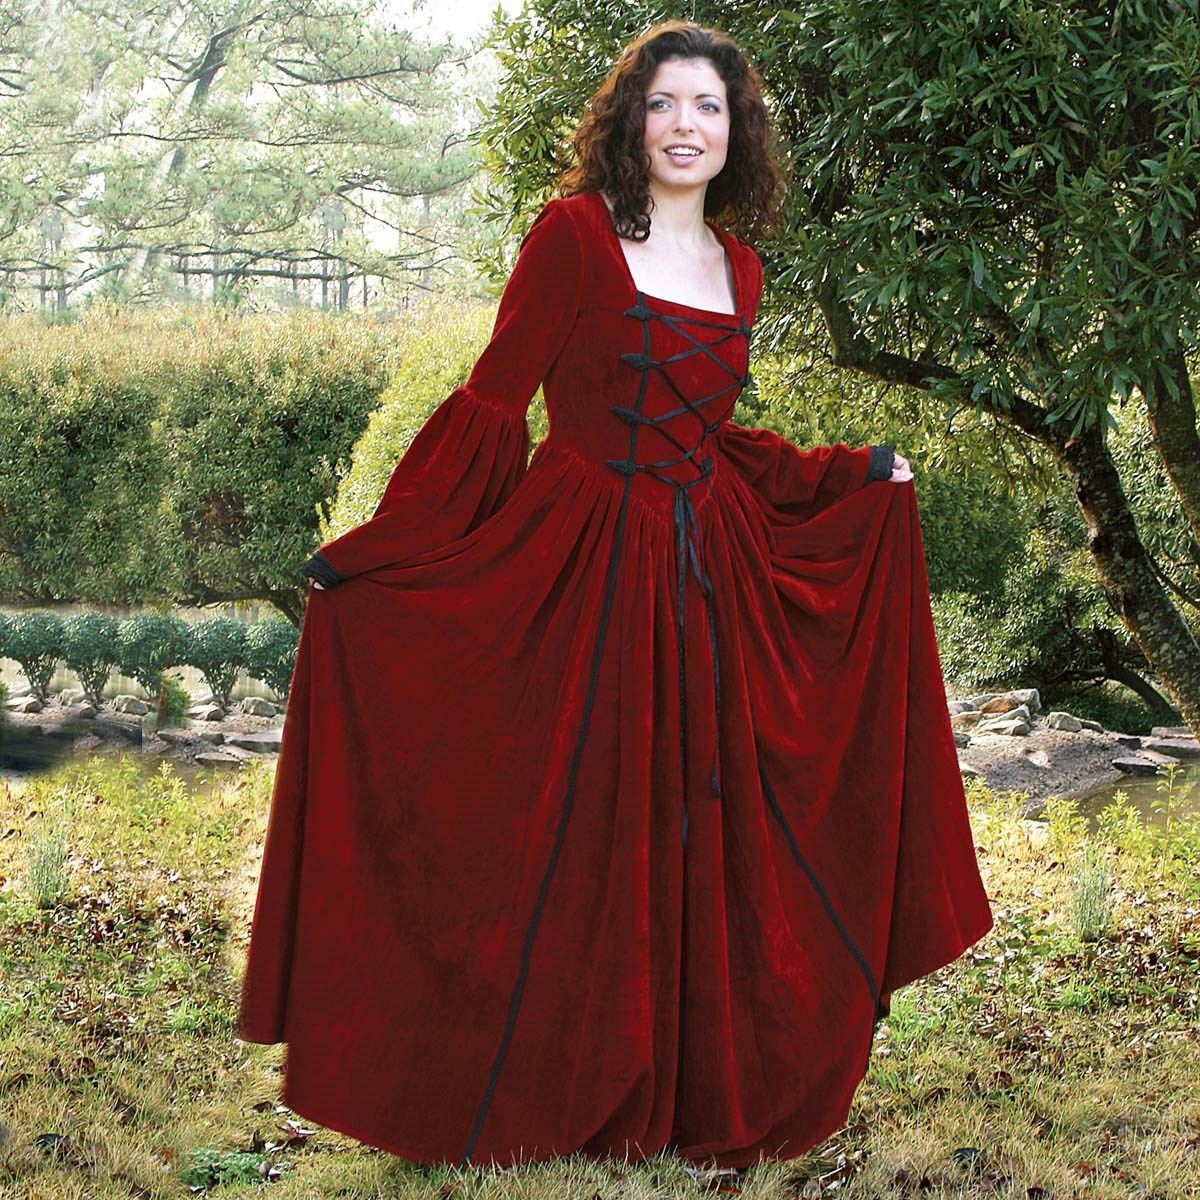 This red 100% cotton velvet medieval dress has full bell sleeves and a full skirt. Matching handmade frogs compliment the black lace-up bodice